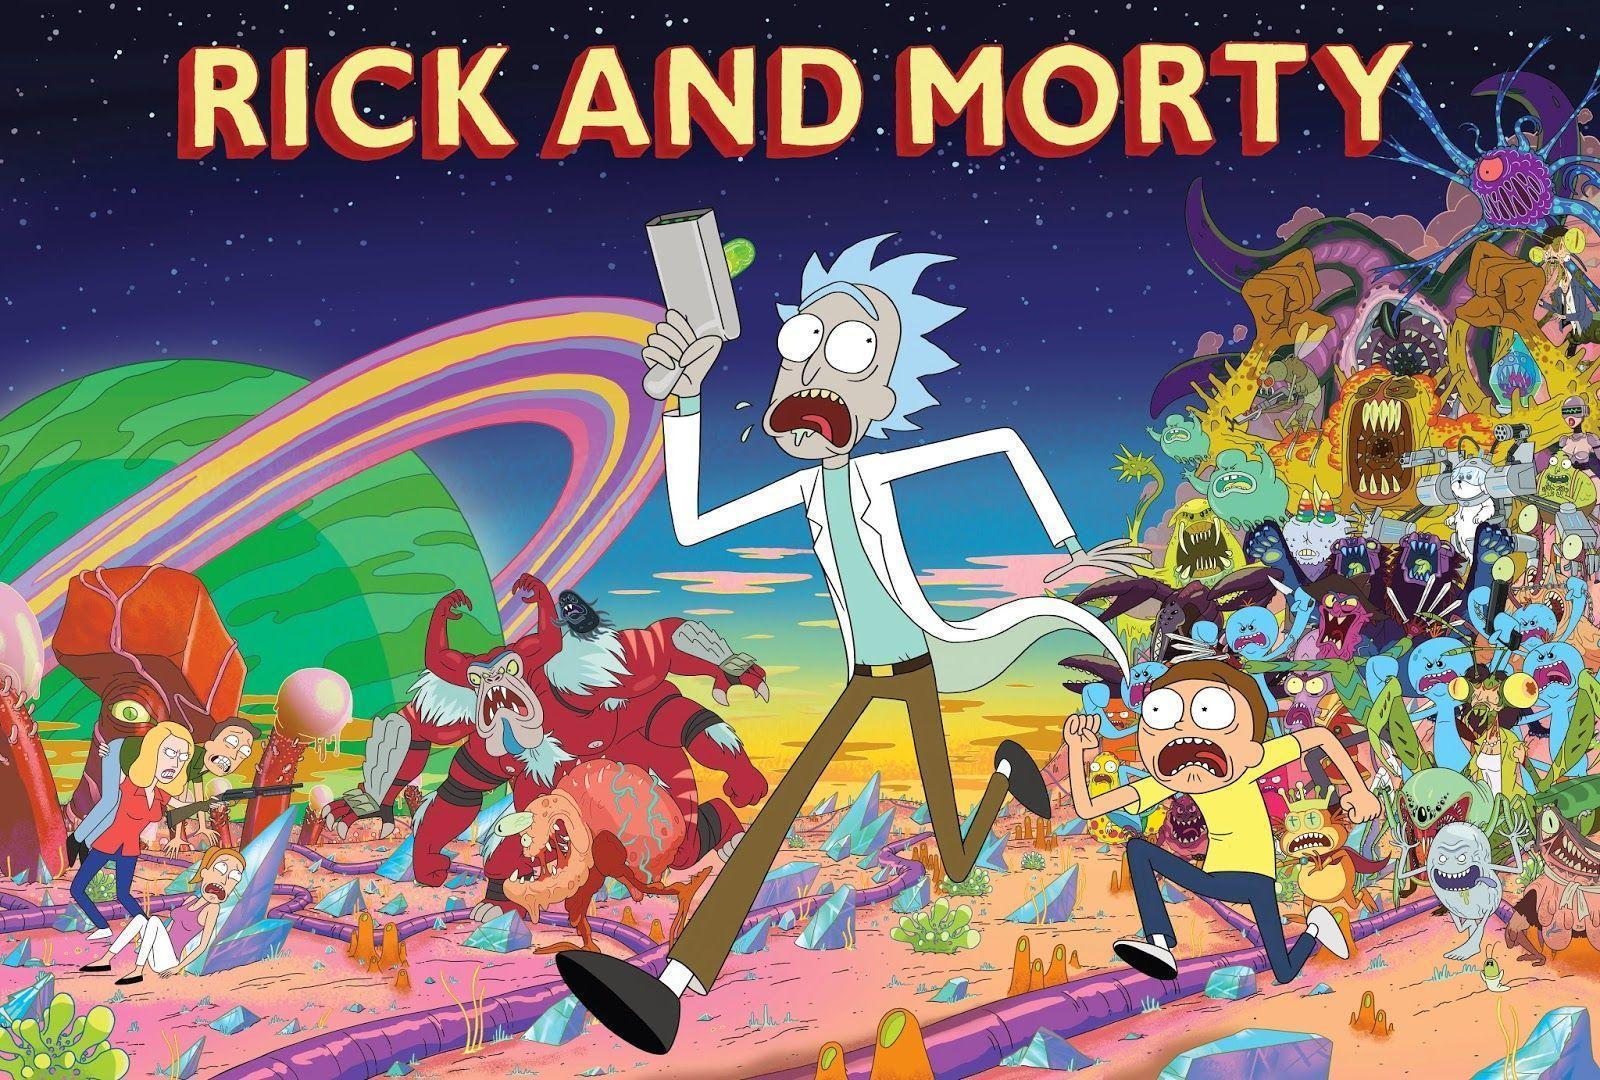 Rick And Morty Wallpapers Wallpaper